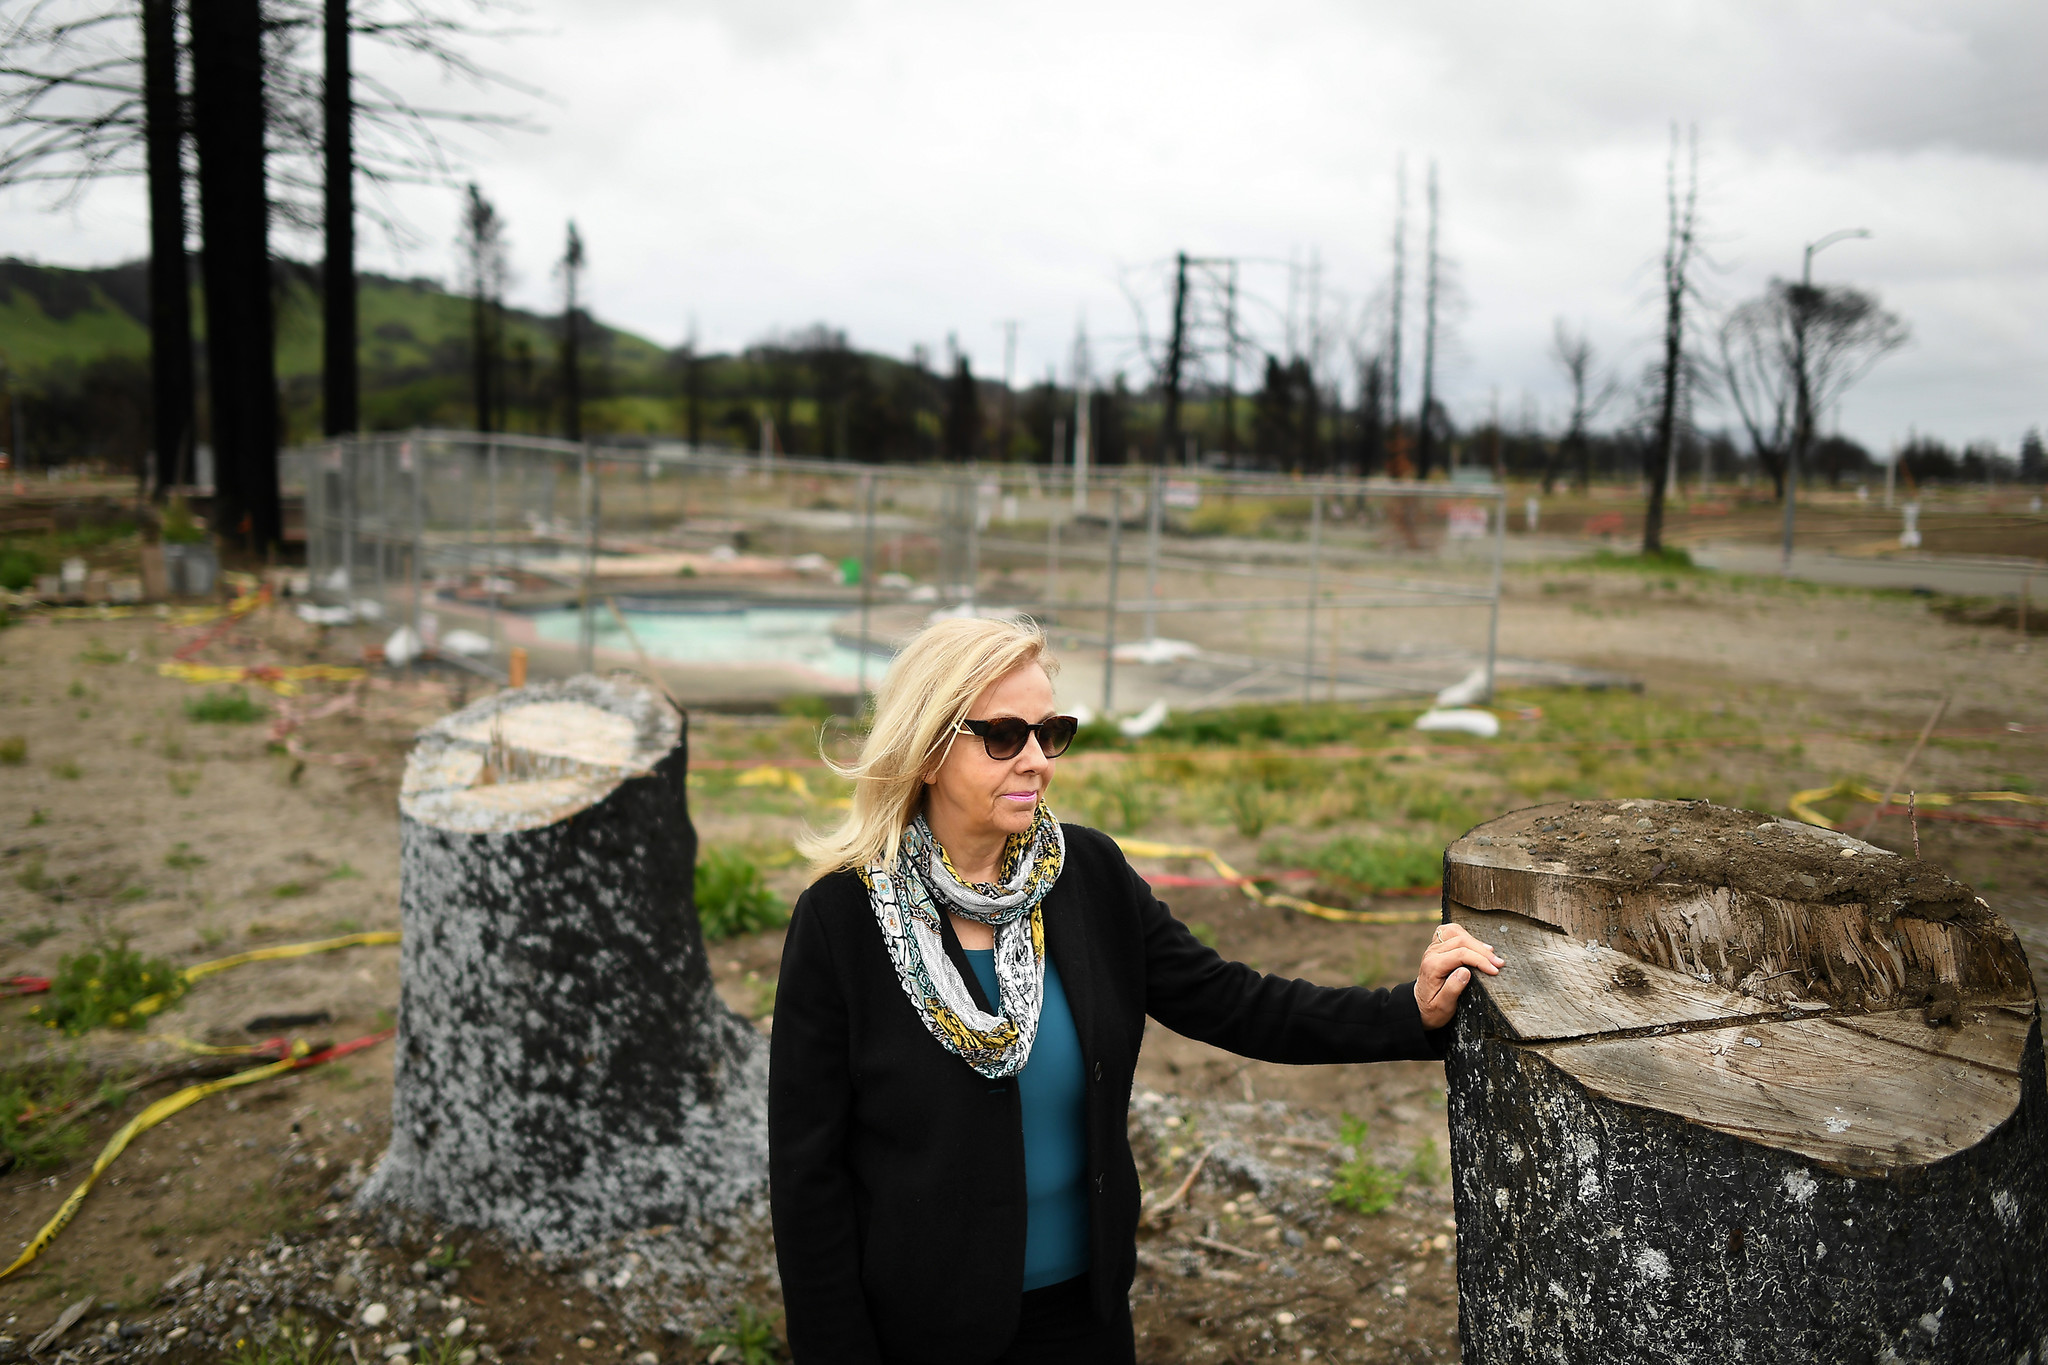 SANTA ROSA, CALIFORNIA APRIL 11, 2018-Real estate agent Sylvia West stands in the empty lots at Mark